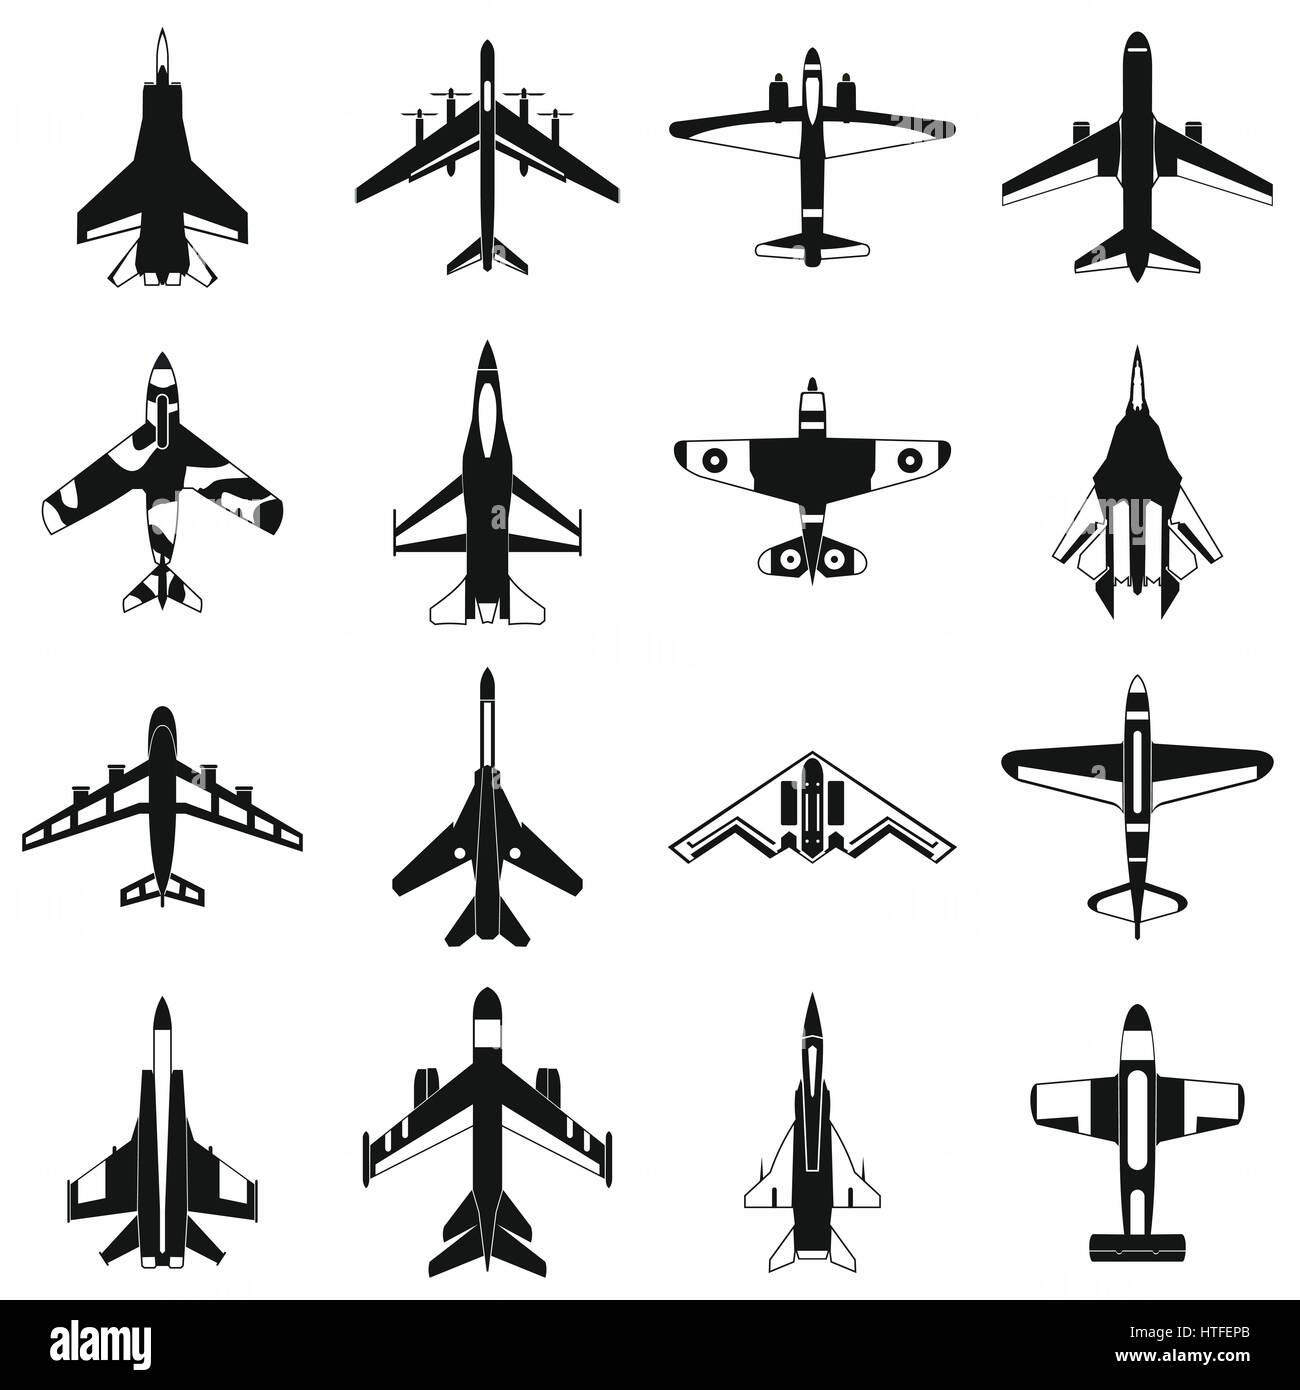 Aviation set icons - Stock Image